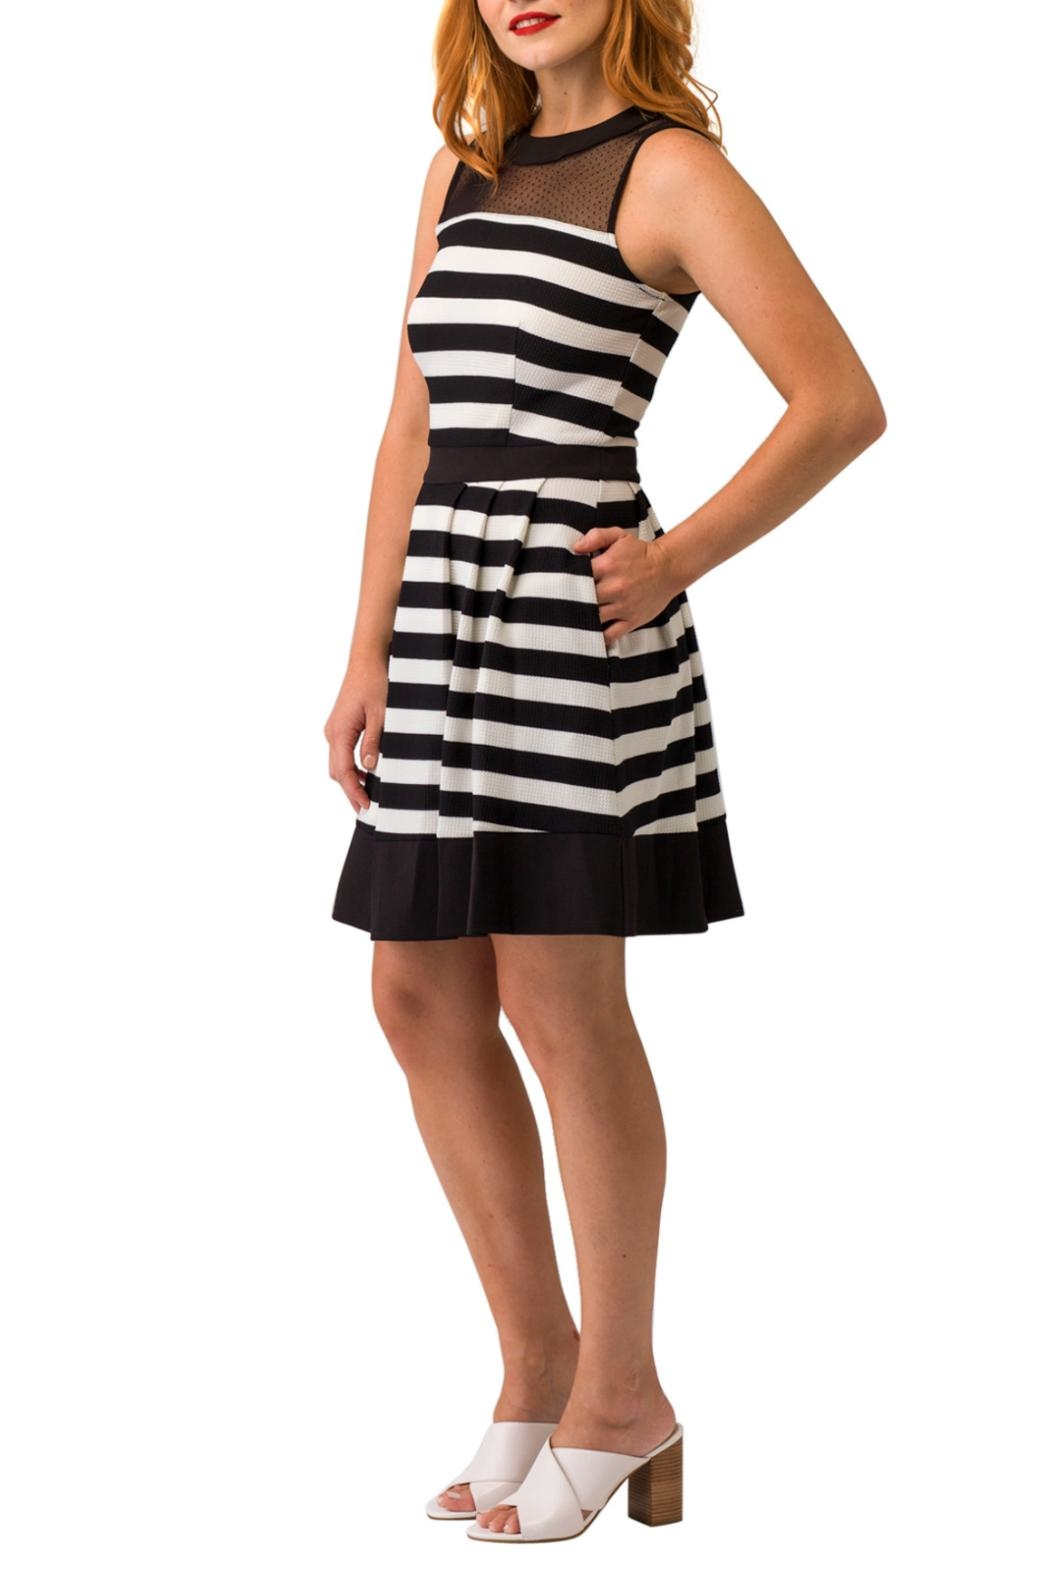 Smak Parlour Sleeveless Striped Dress - Front Full Image